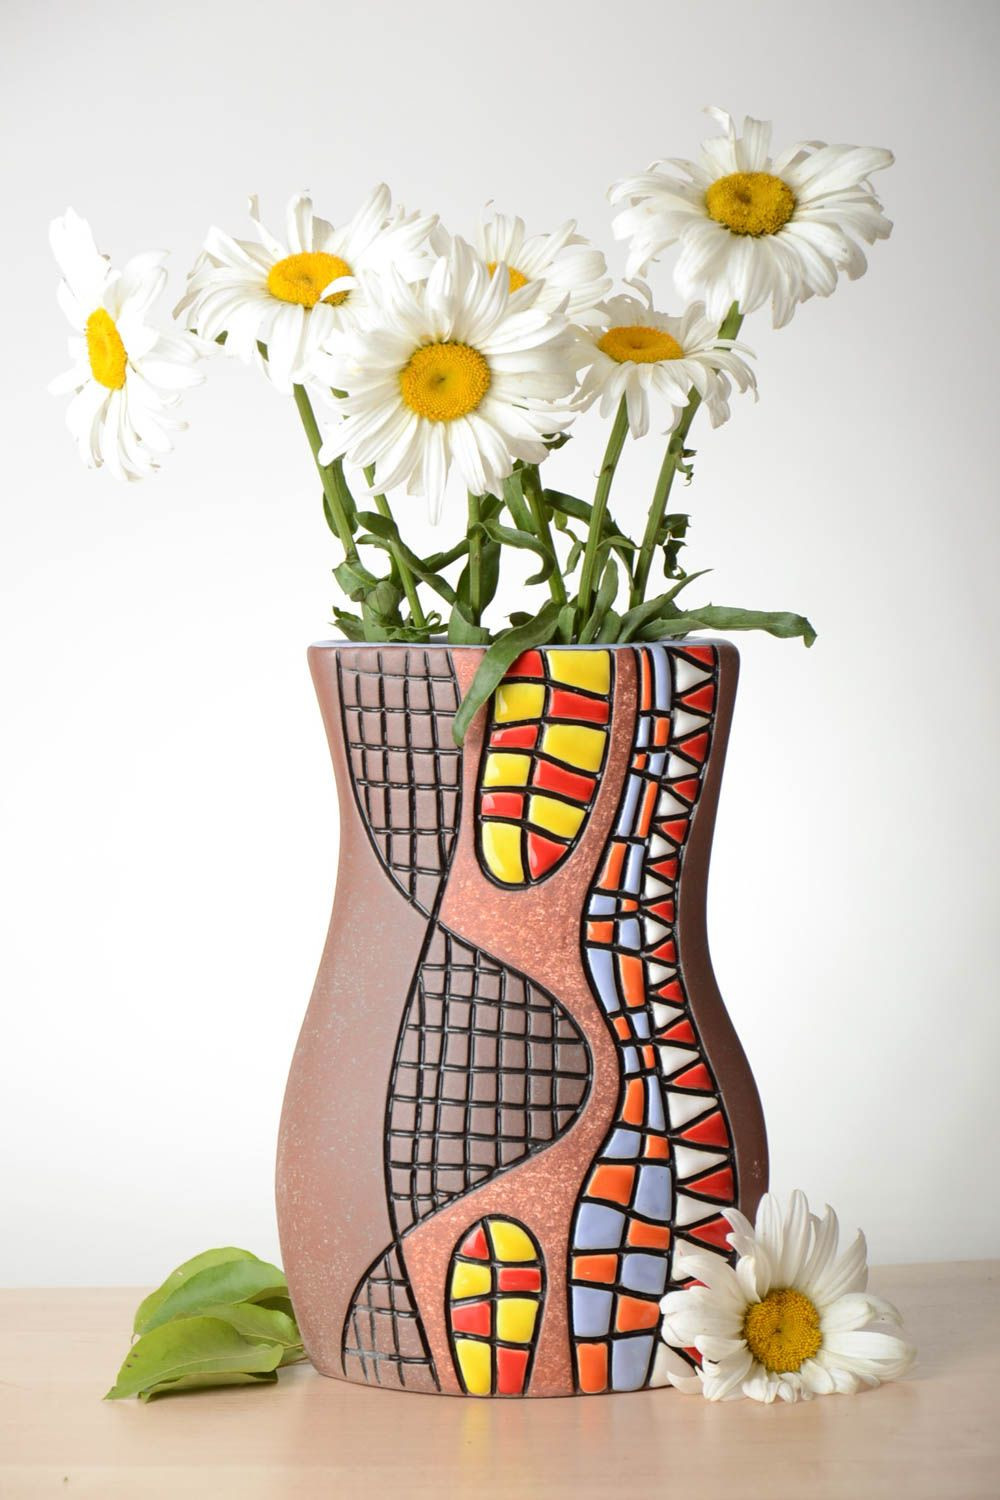 modern ceramic vase of flower vase designs ideas flowers healthy for vases stylish handmade ceramic vase flower vase design clay craft room decor ideas madeheart